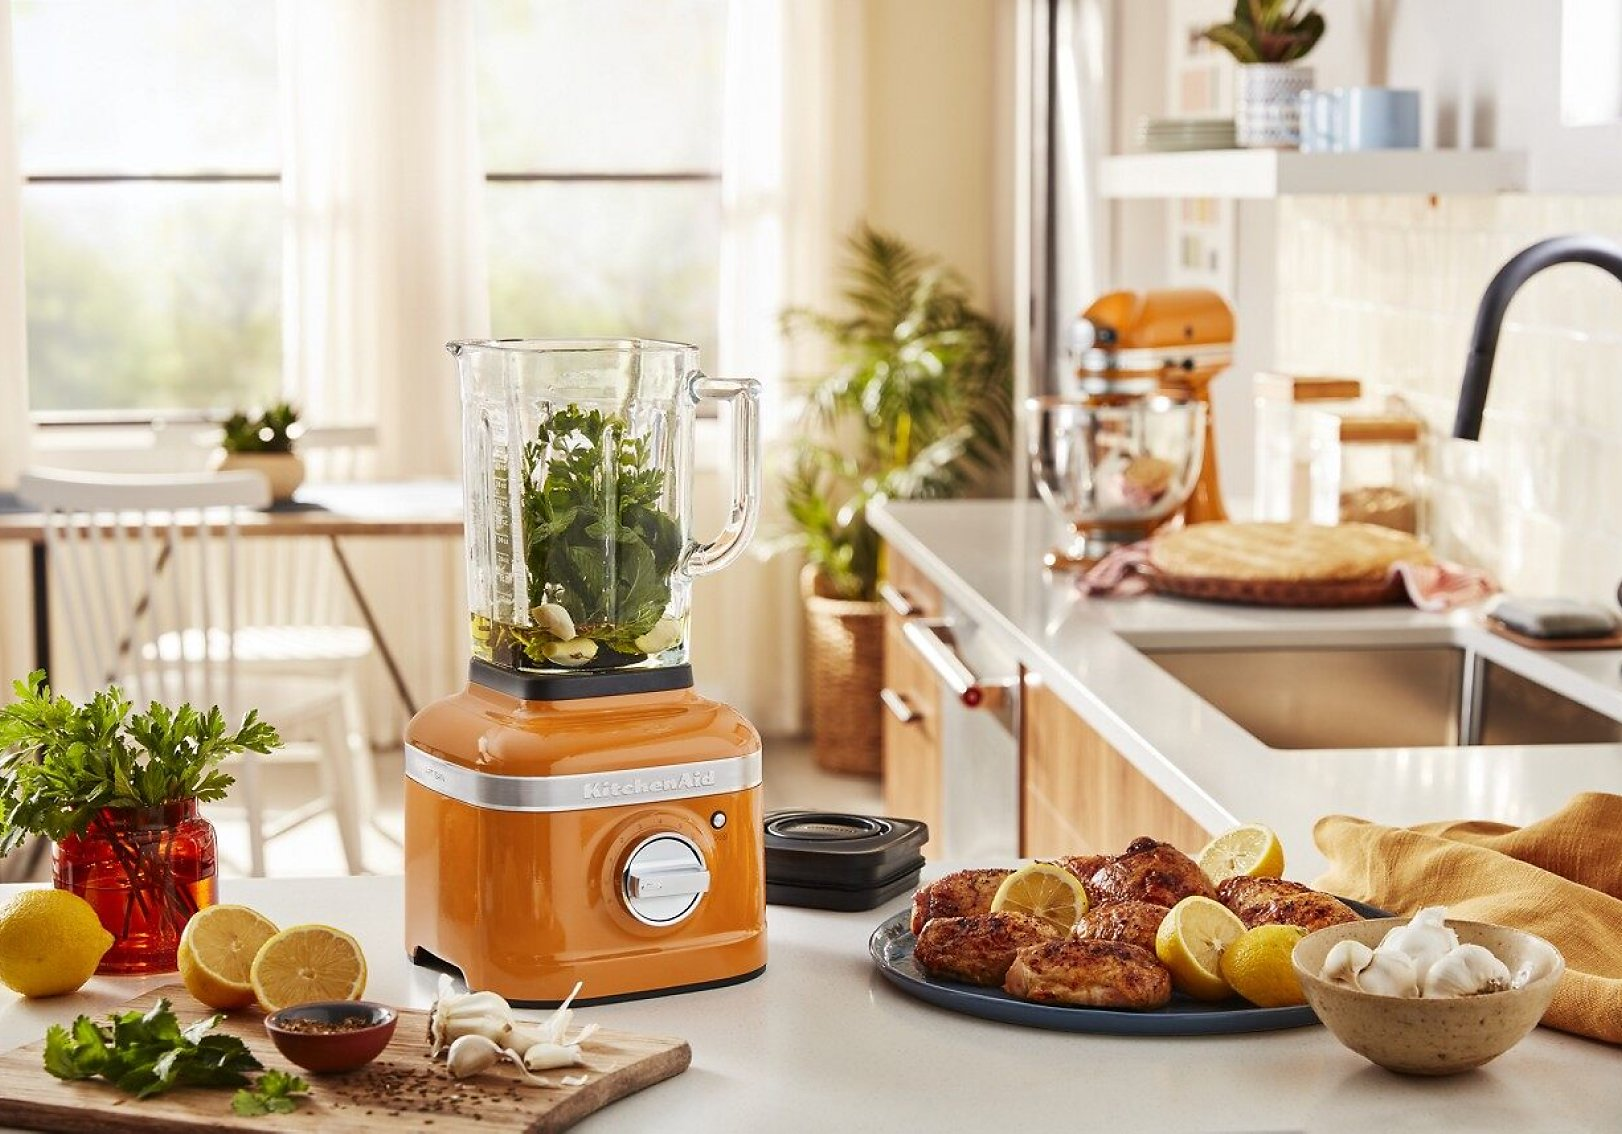 A KitchenAid® blender surrounded by ingredients